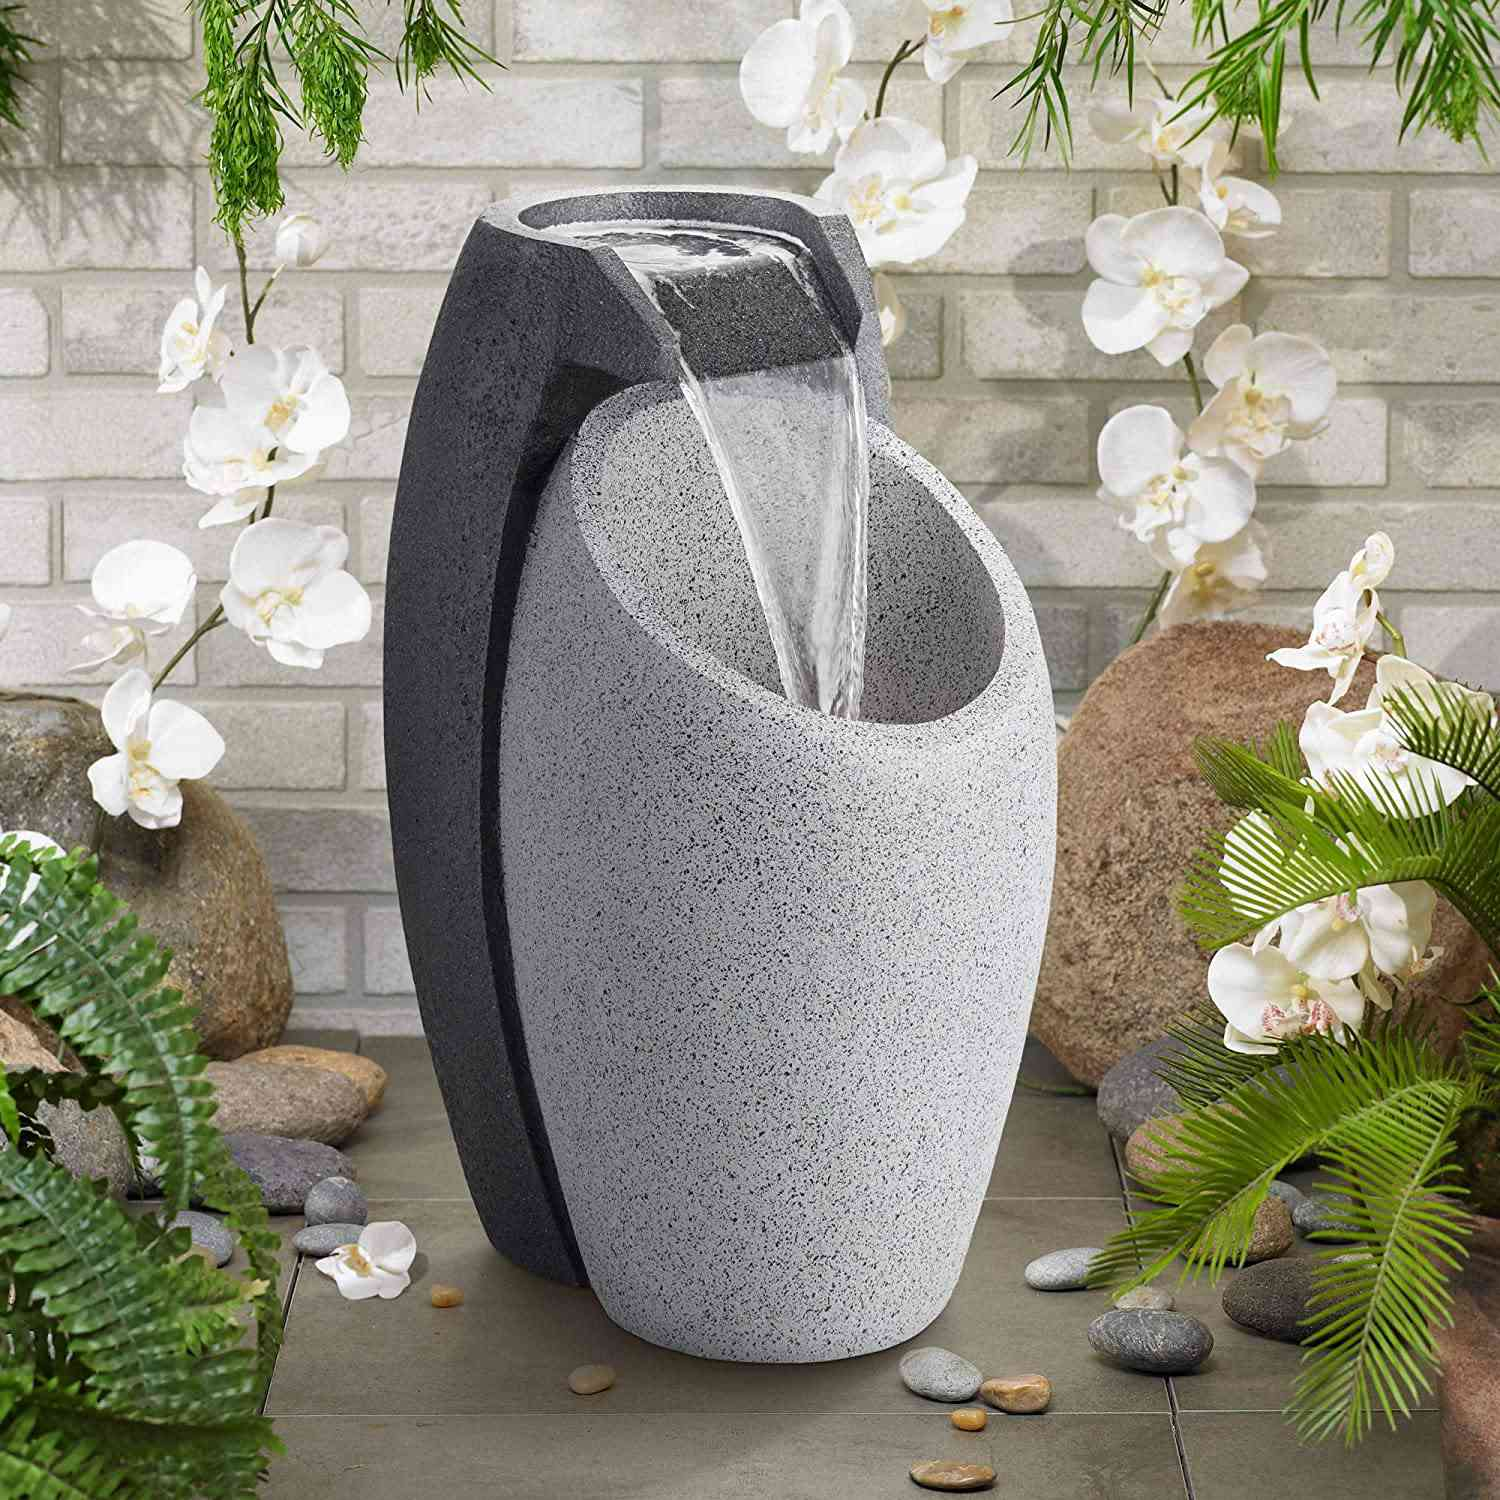 the 10 best water fountains of 2021